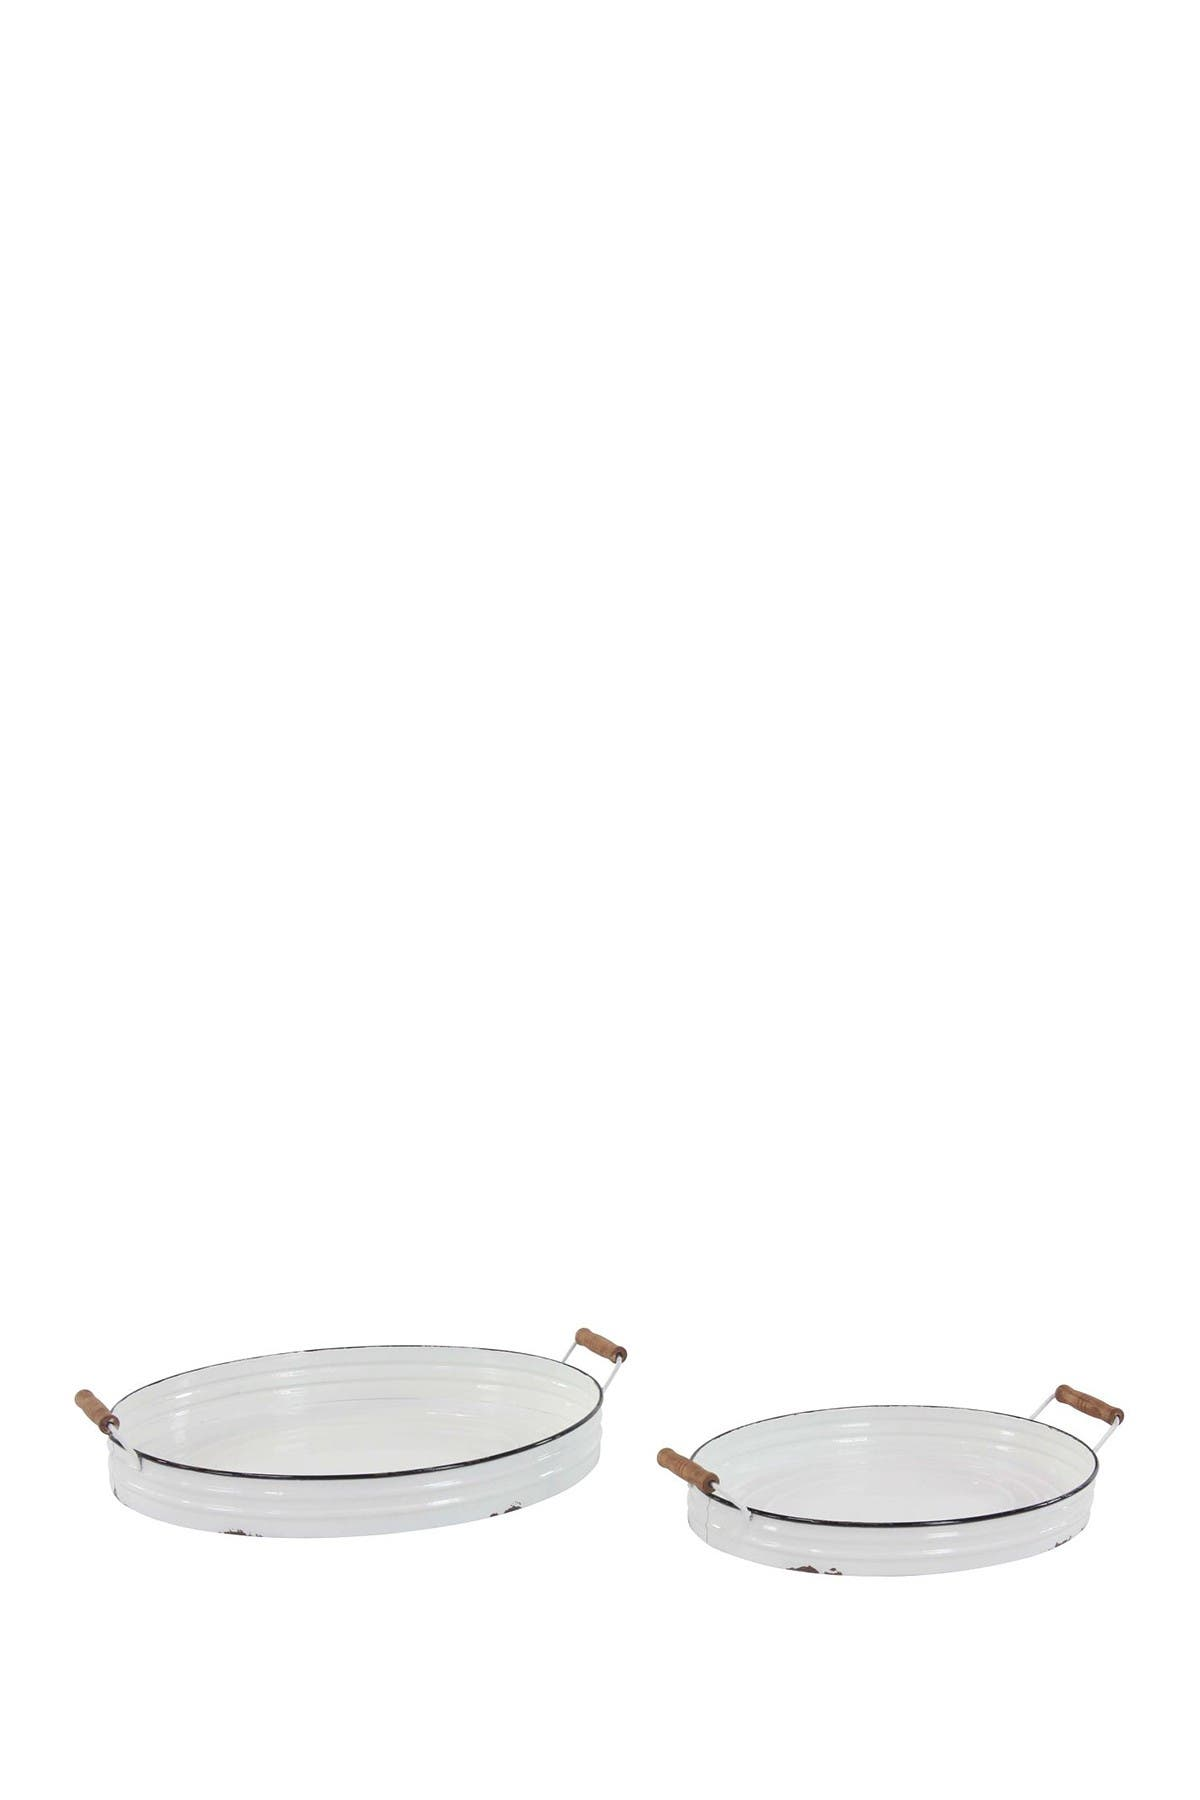 Image of Willow Row Metal Round Tray 2-Piece Set